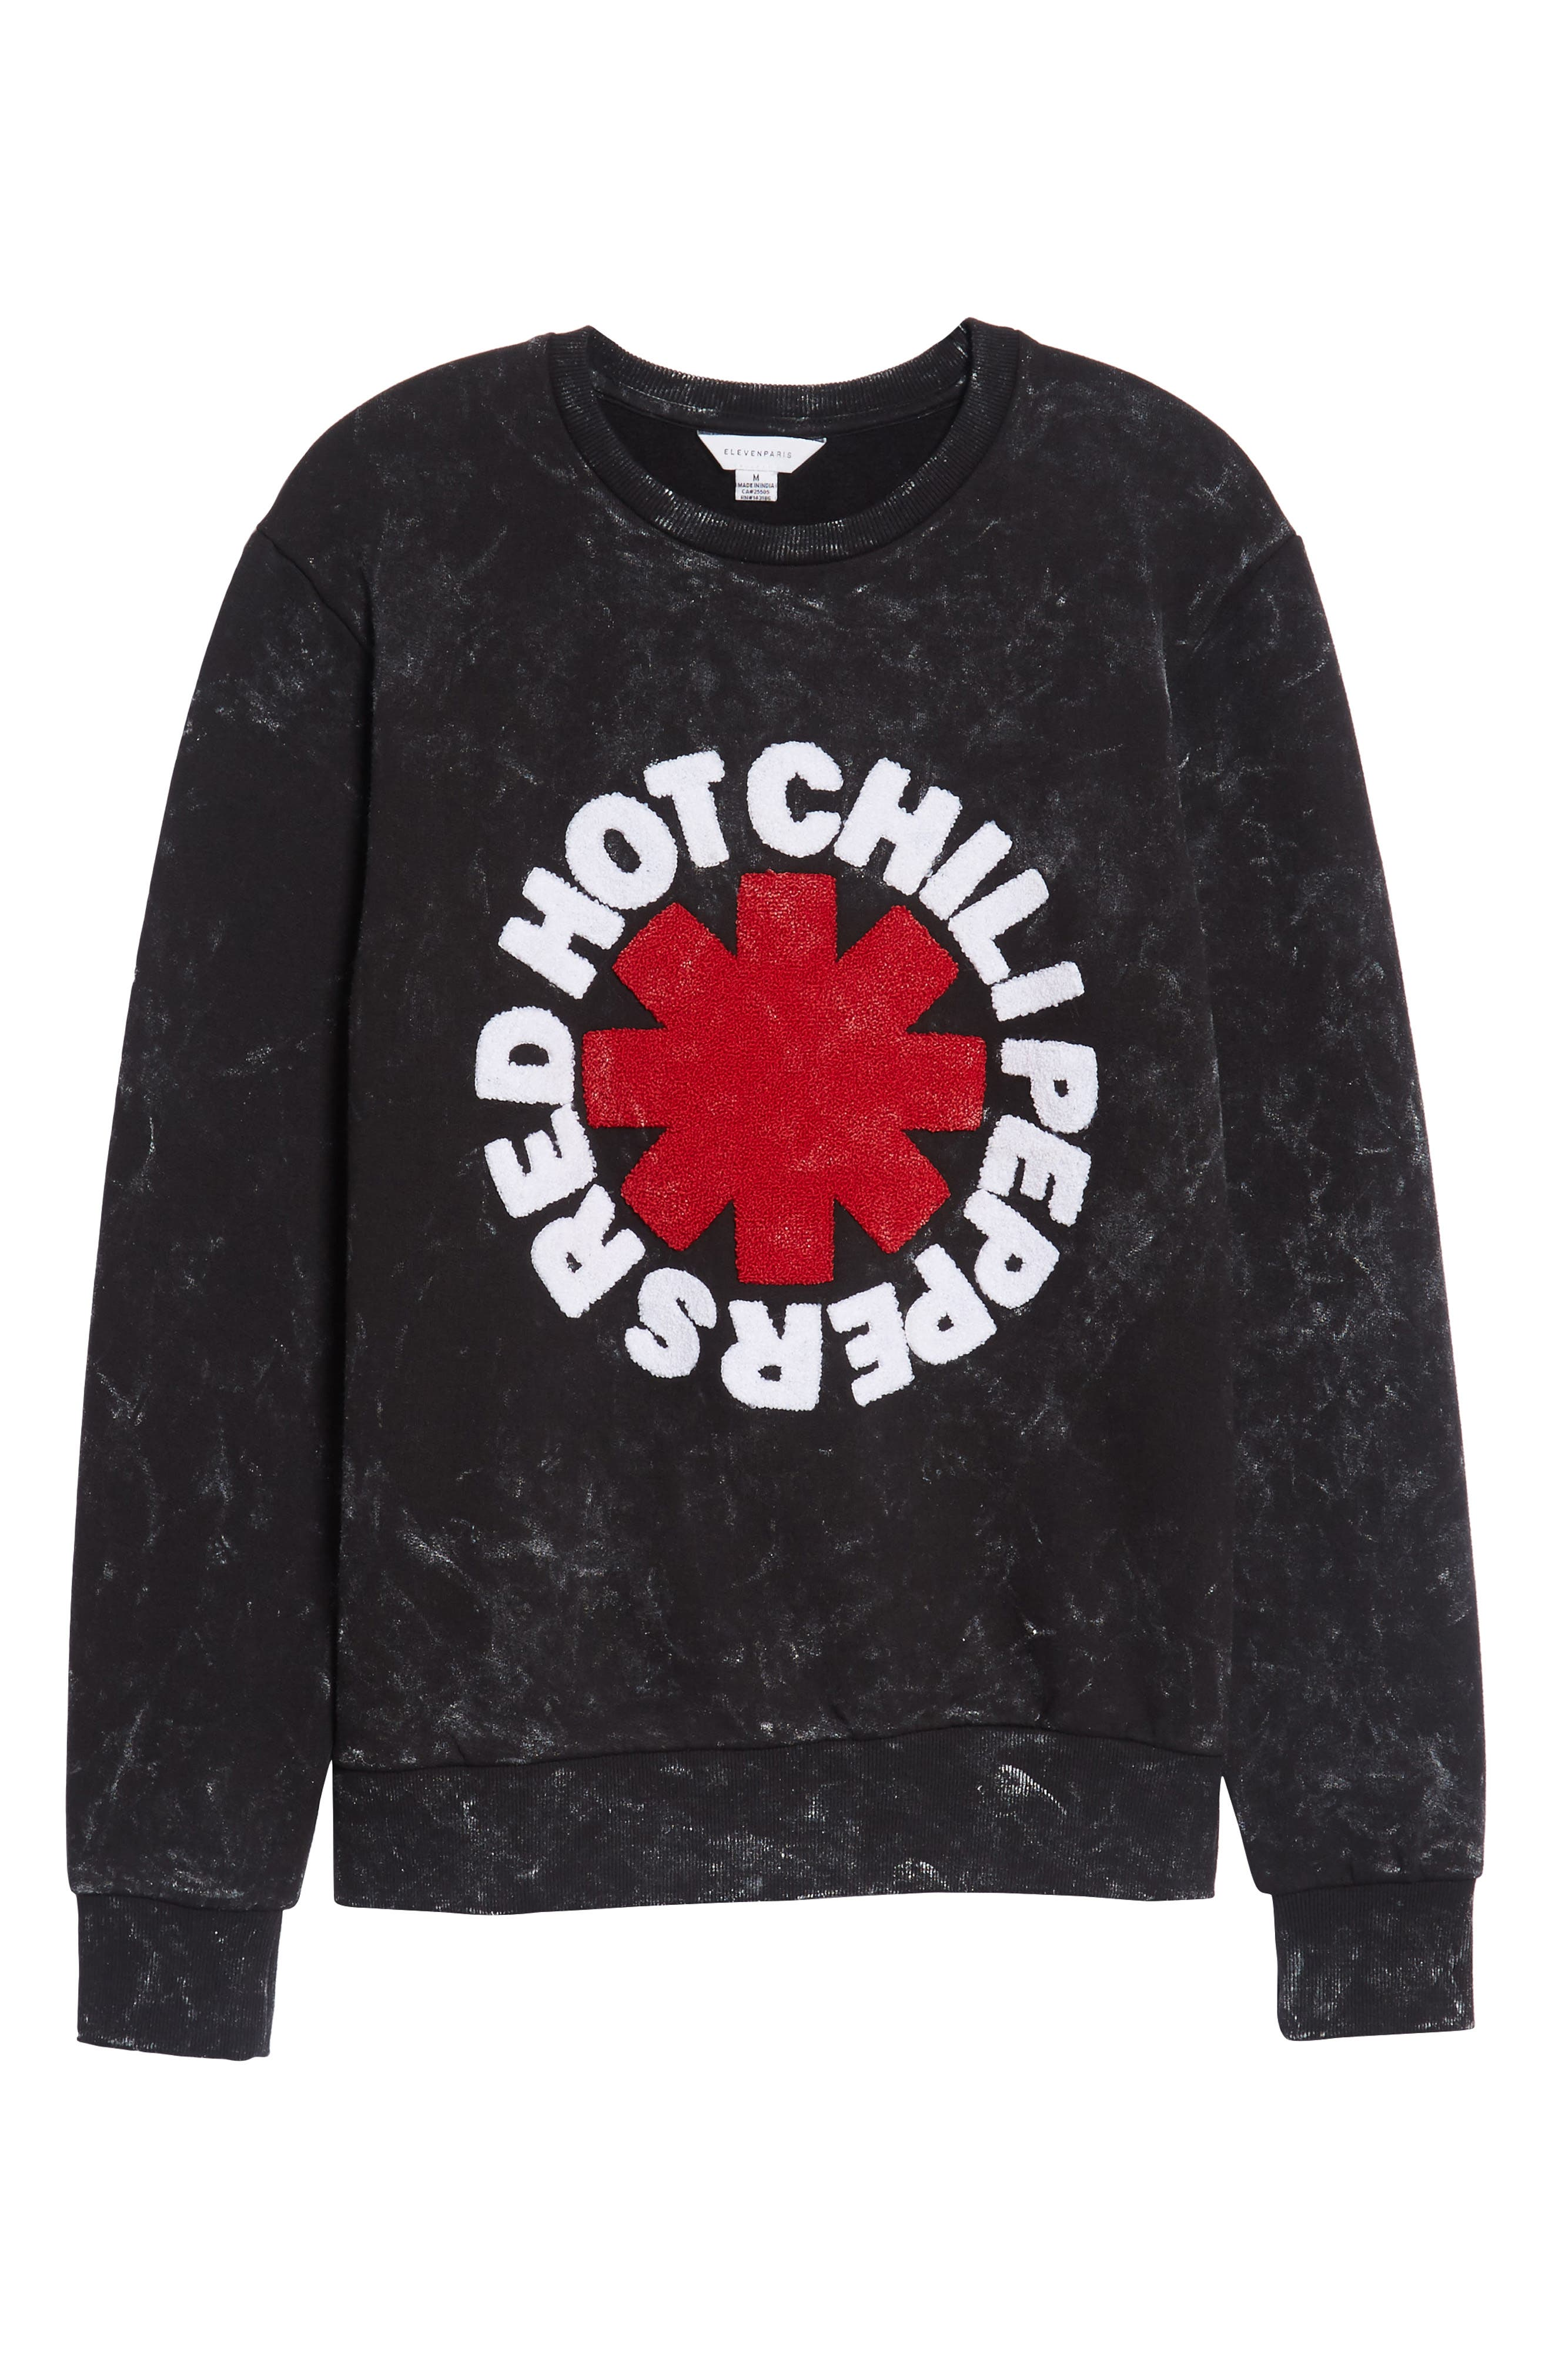 Red Hot Chili Peppers Sweatshirt,                             Alternate thumbnail 6, color,                             001